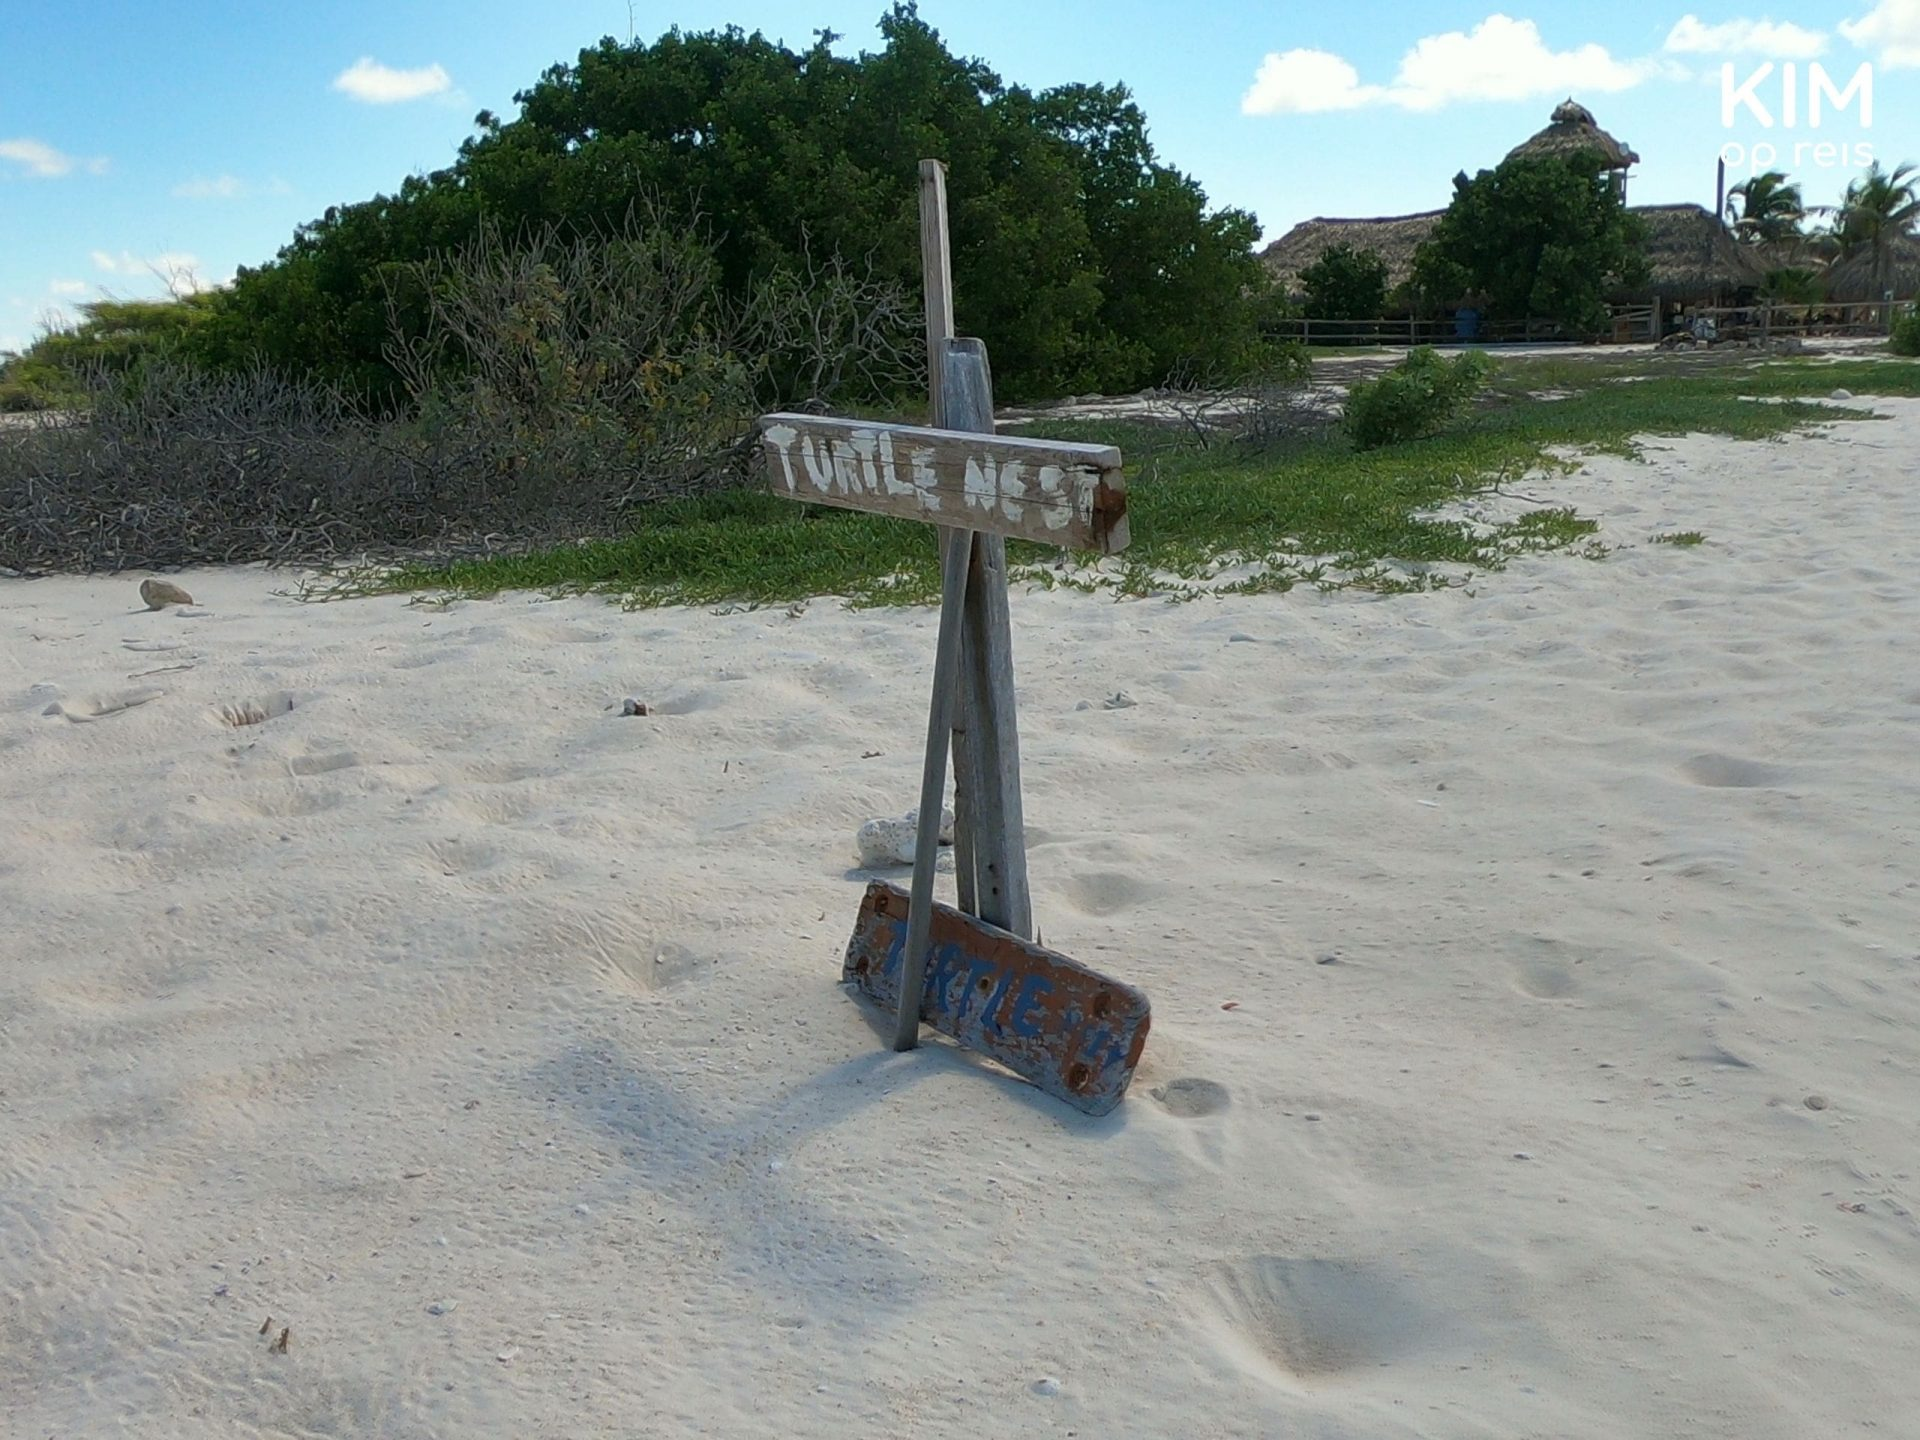 Turtle nest Klein Curaçao: a simple wooden sign marks the nest on the beach